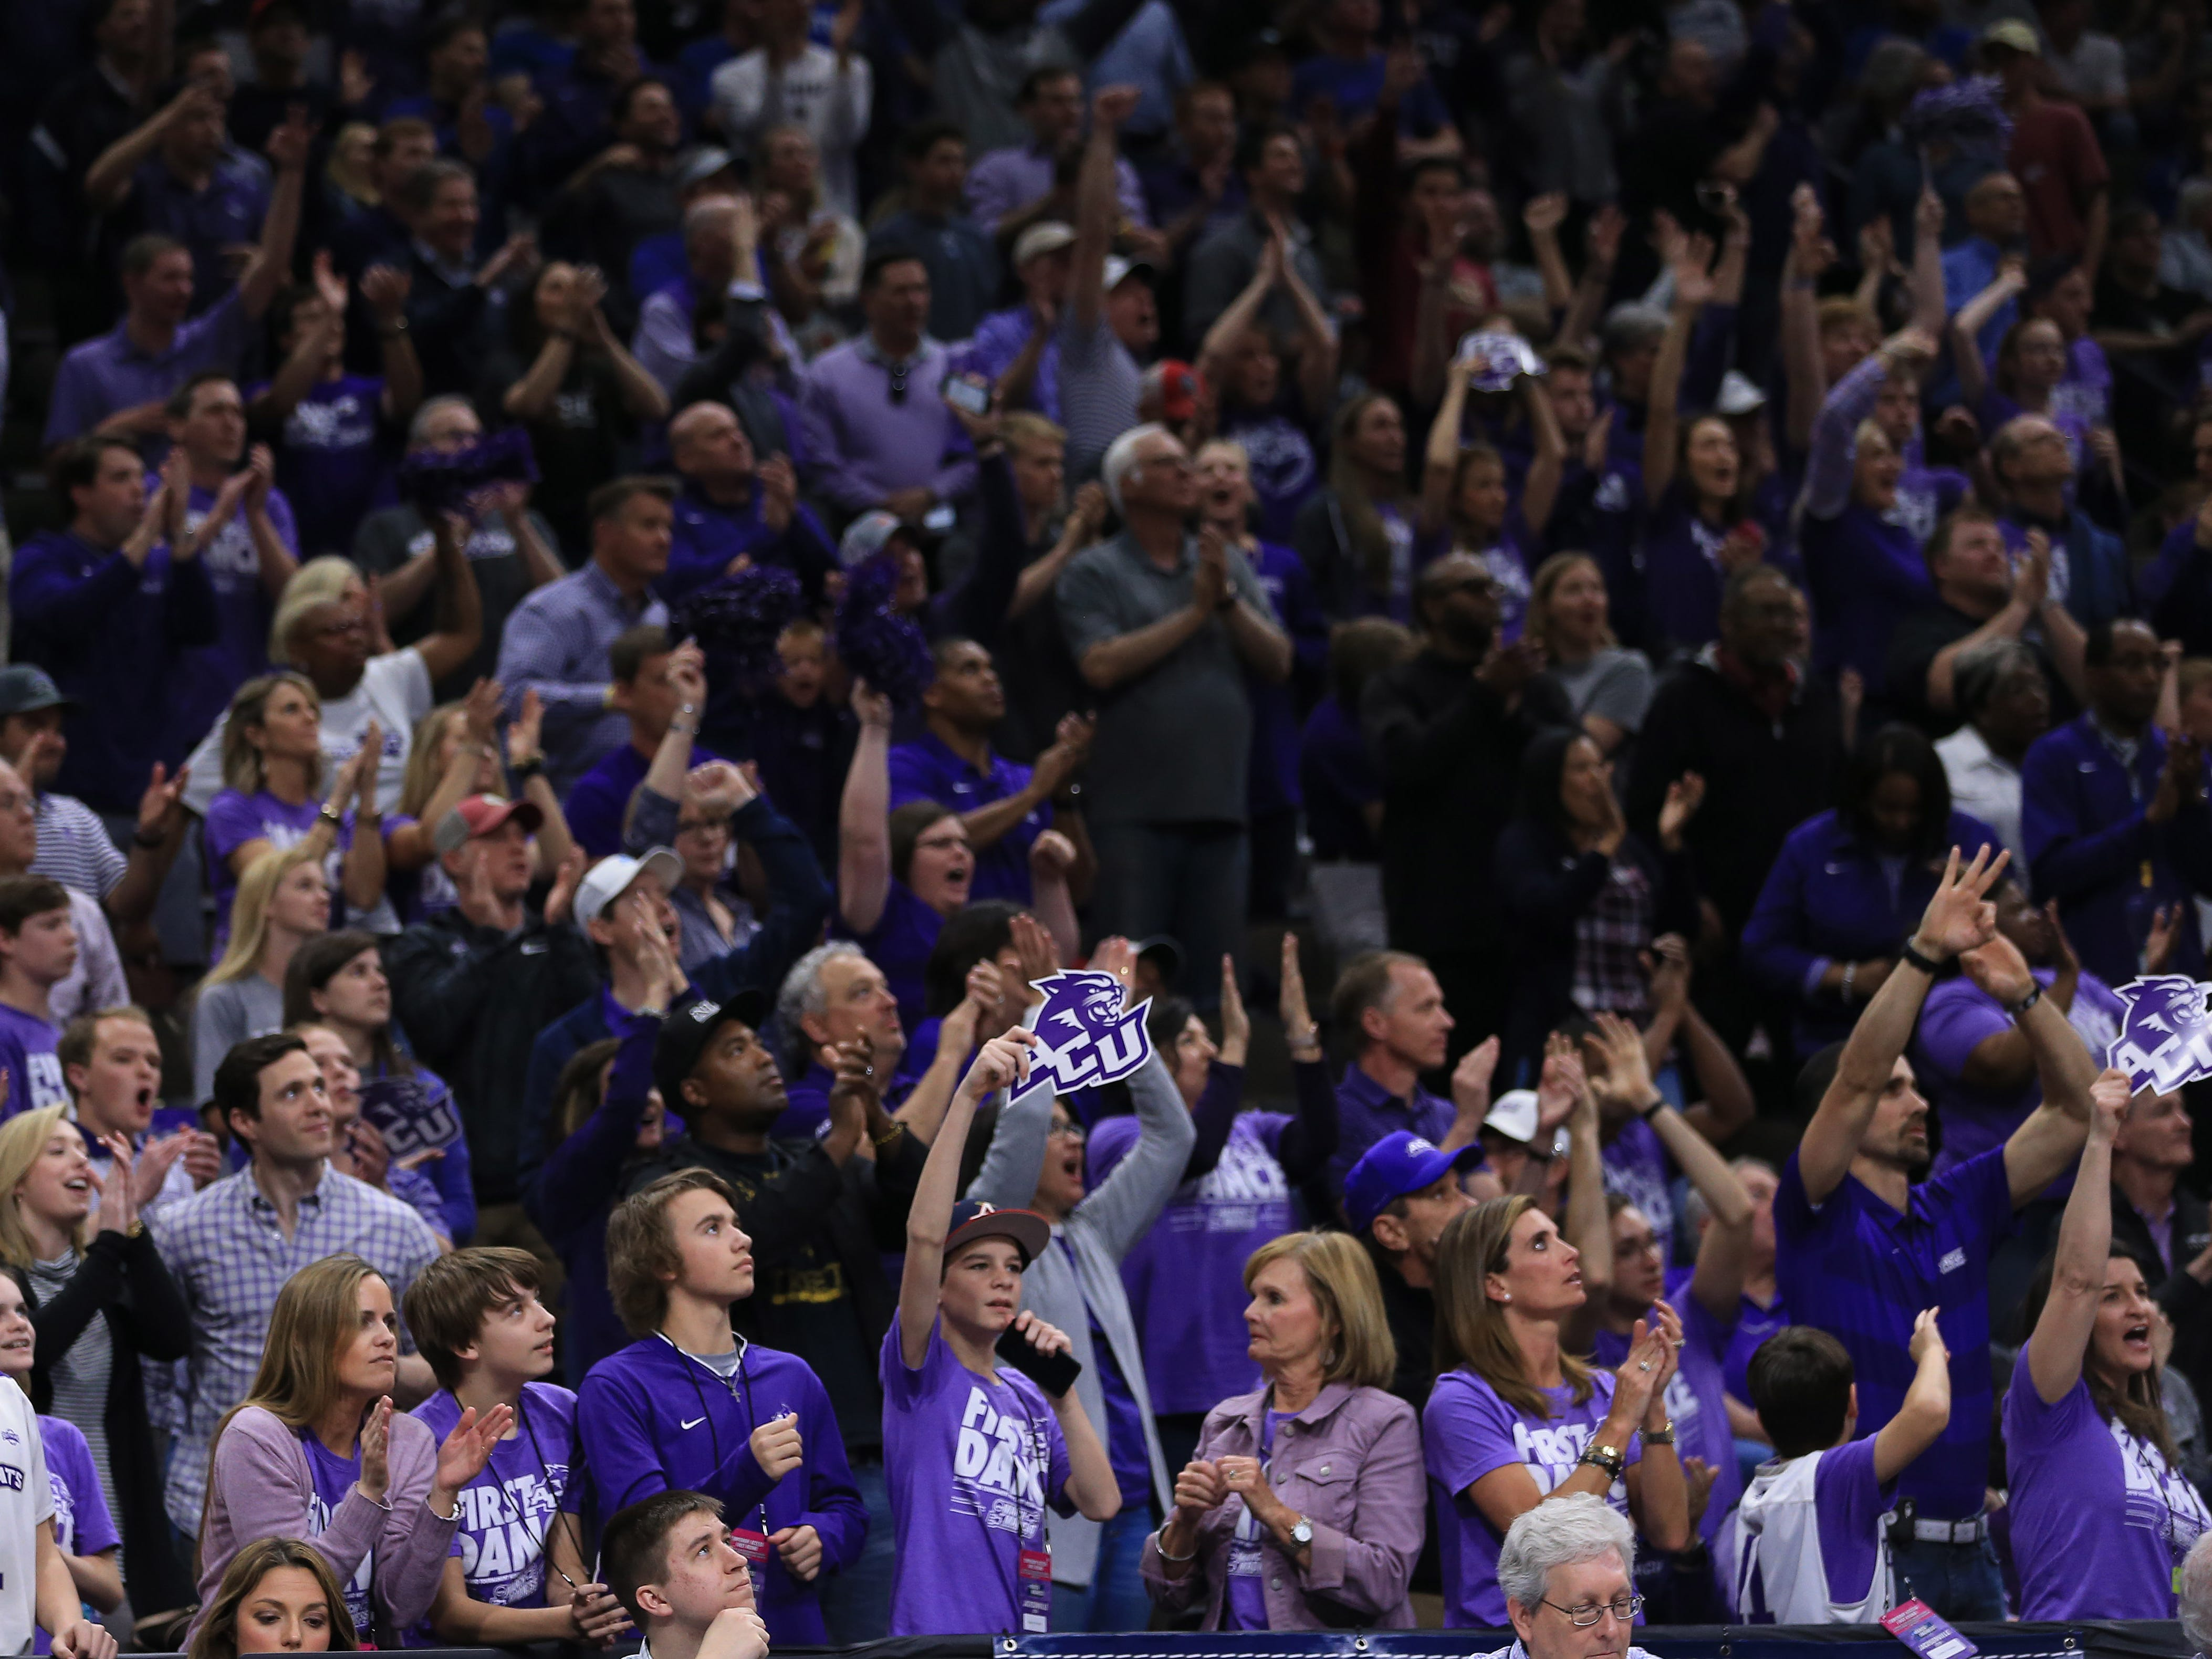 Mar 21, 2019; Jacksonville, FL, USA; Abilene Christian Wildcats fans cheer from the stands during the first half against the Kentucky Wildcats in the first round of the 2019 NCAA Tournament at Jacksonville Veterans Memorial Arena. Mandatory Credit: Matt Stamey-USA TODAY Sports